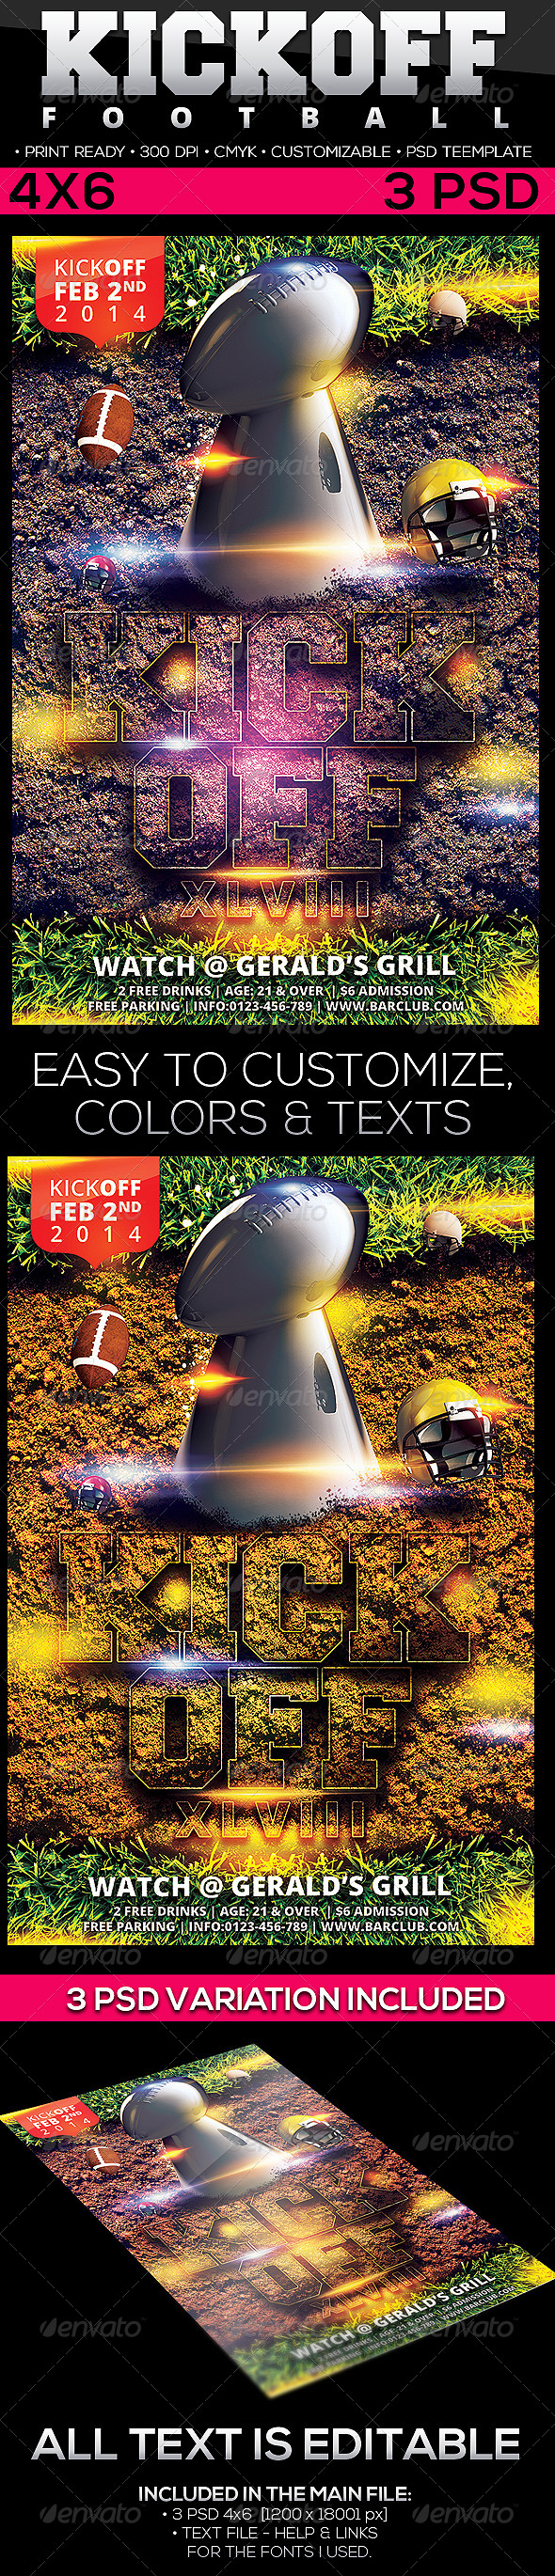 GraphicRiver Kickoff Football Flyer Template 6556925